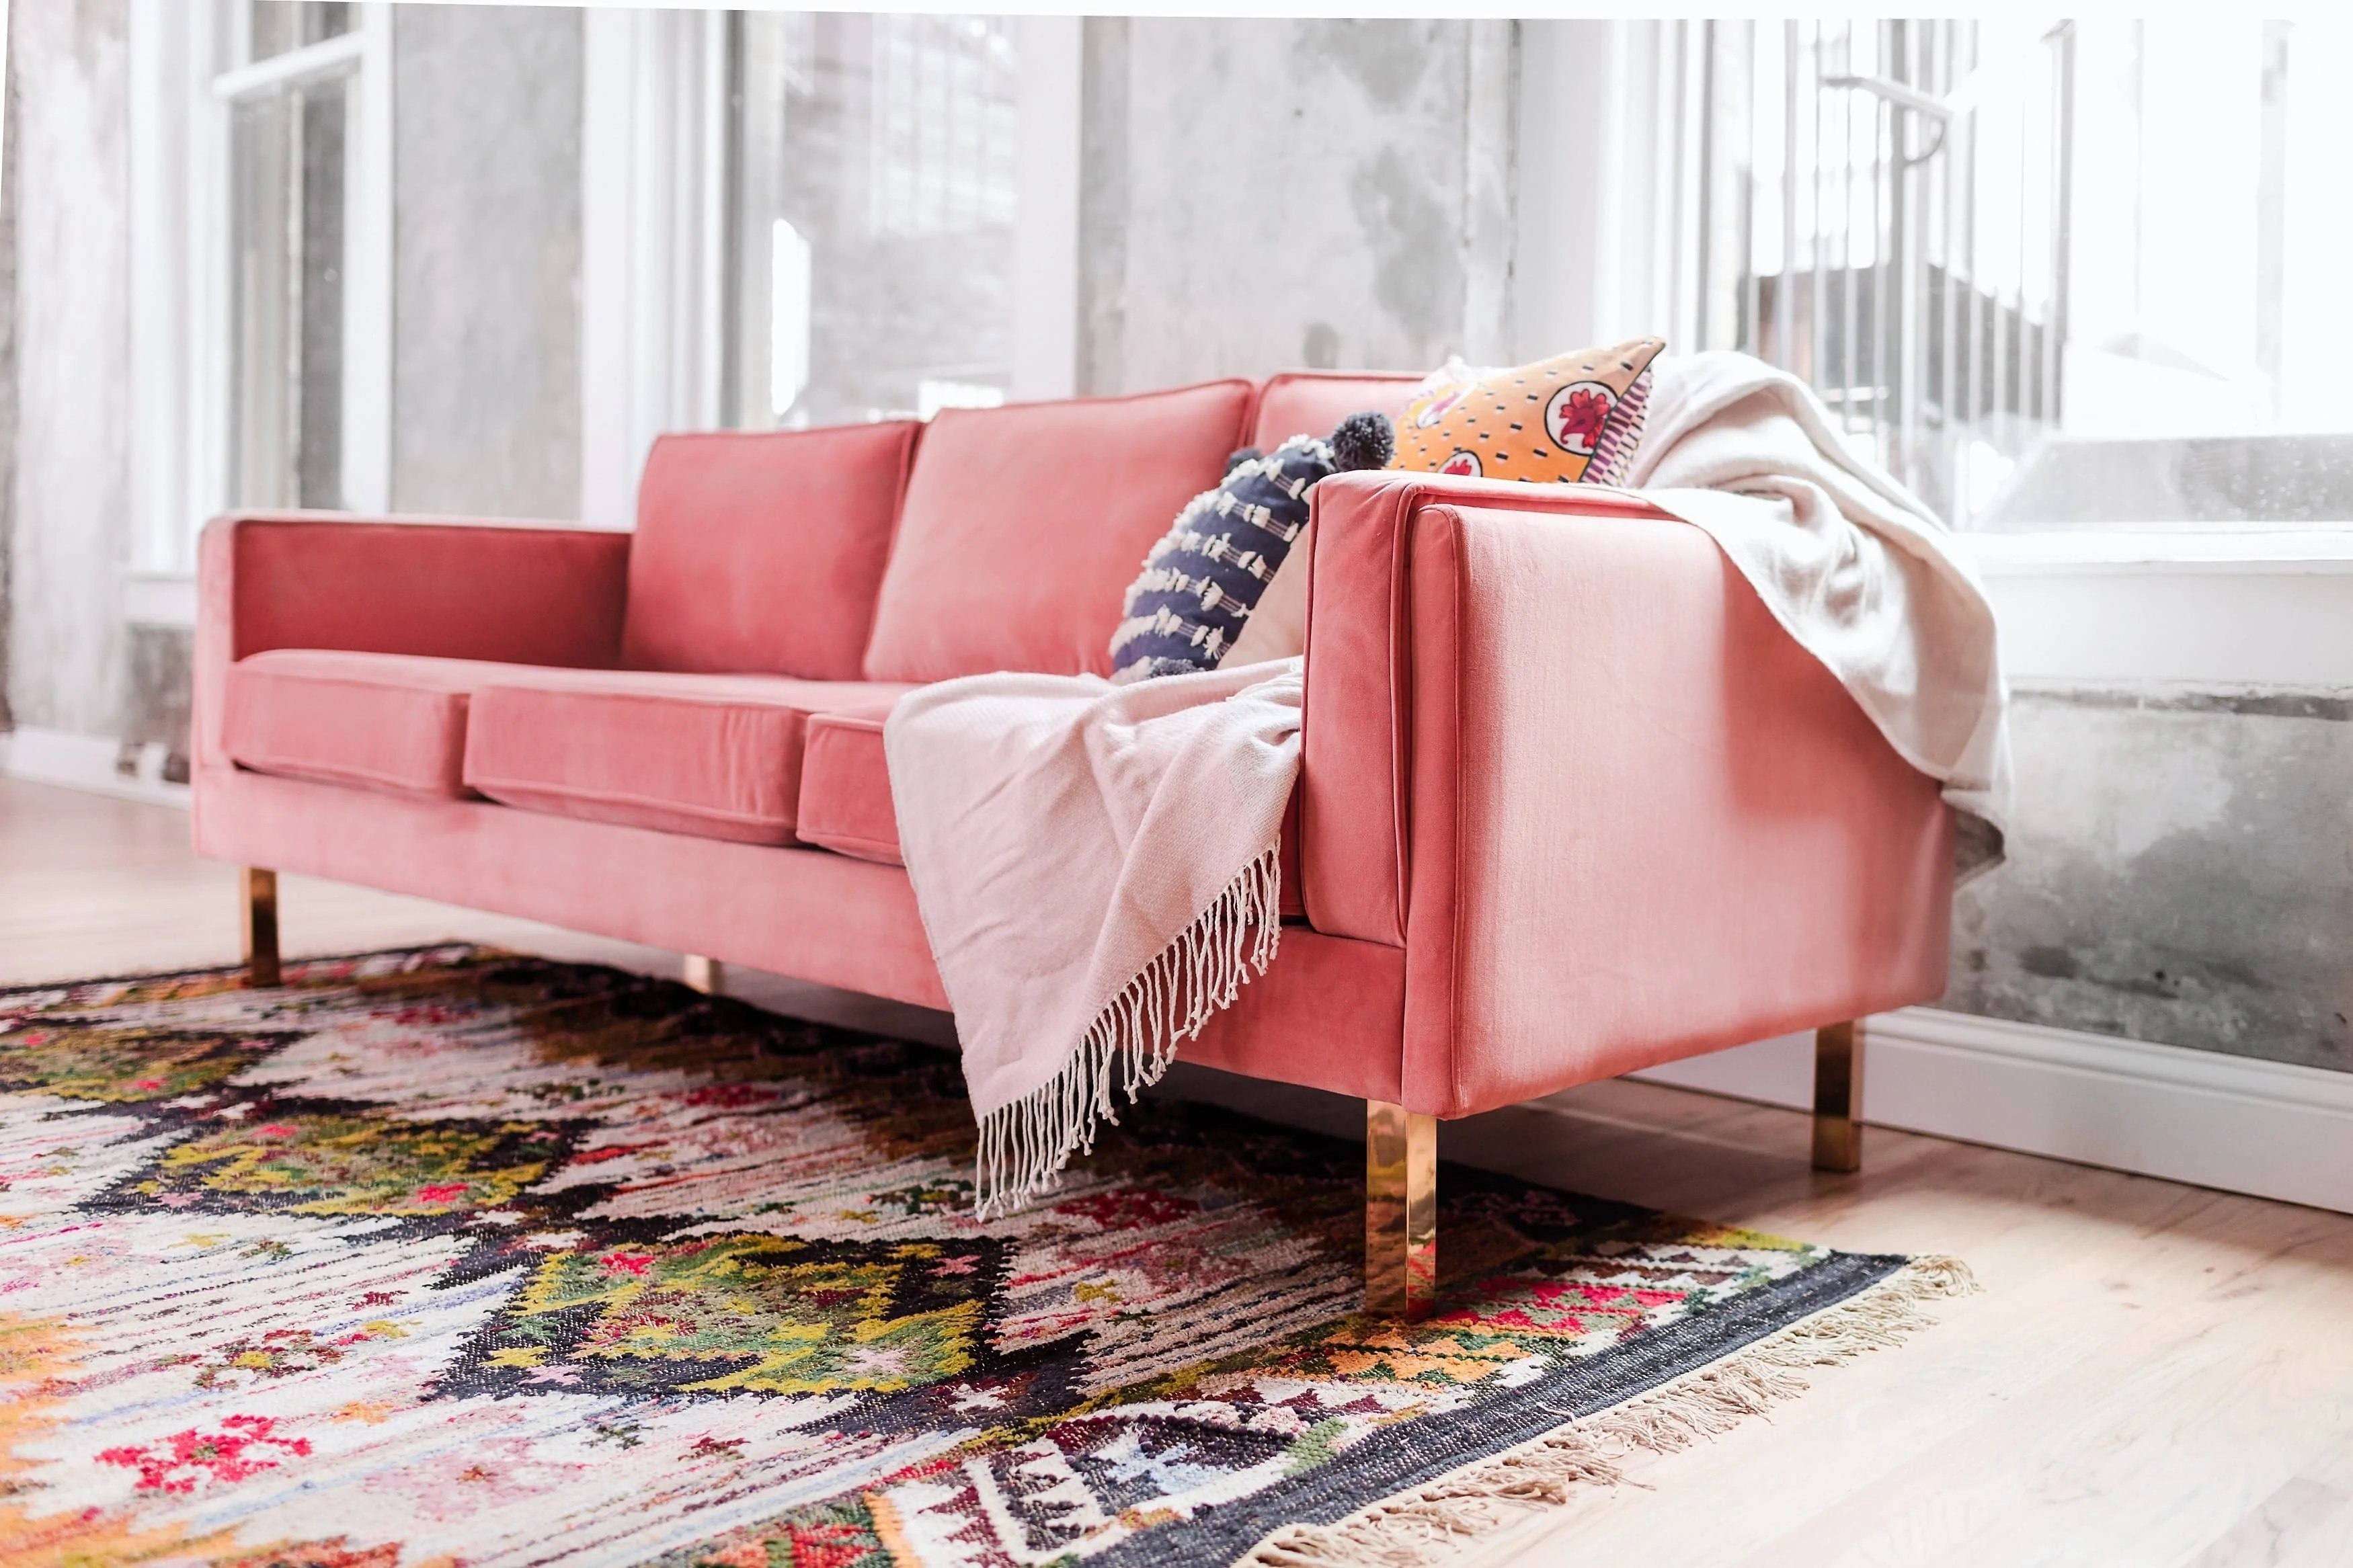 Rosa Couch Lexington Midcentury Modern Sofa - Blush Pink Velvet Sofa ...